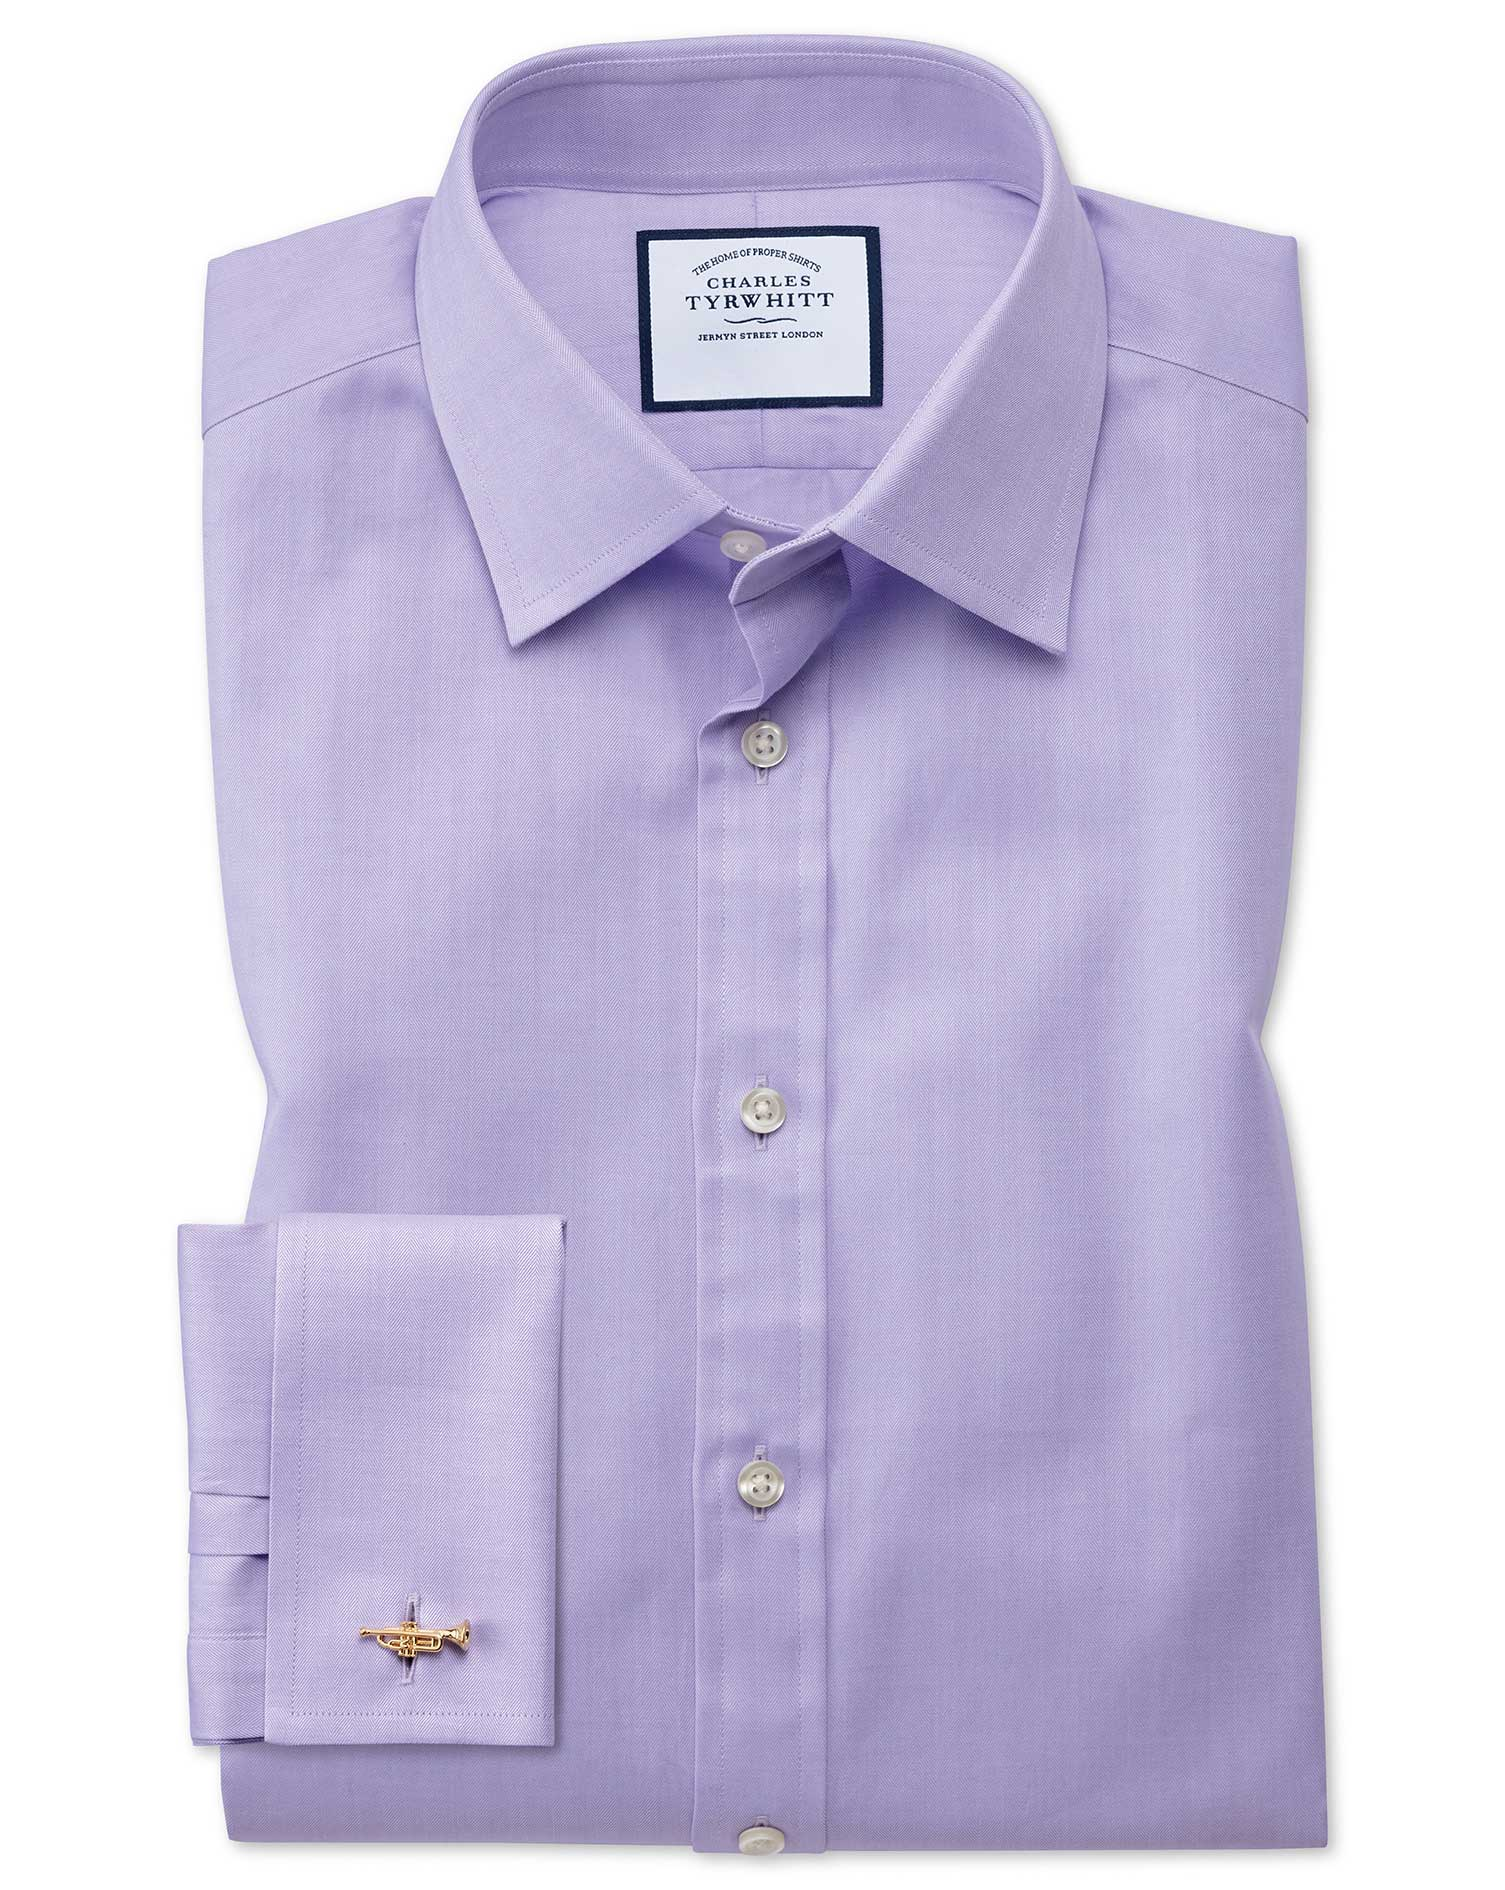 Extra Slim Fit Fine Herringbone Lilac Cotton Formal Shirt Double Cuff Size 15/35 by Charles Tyrwhitt from Charles Tyrwhitt